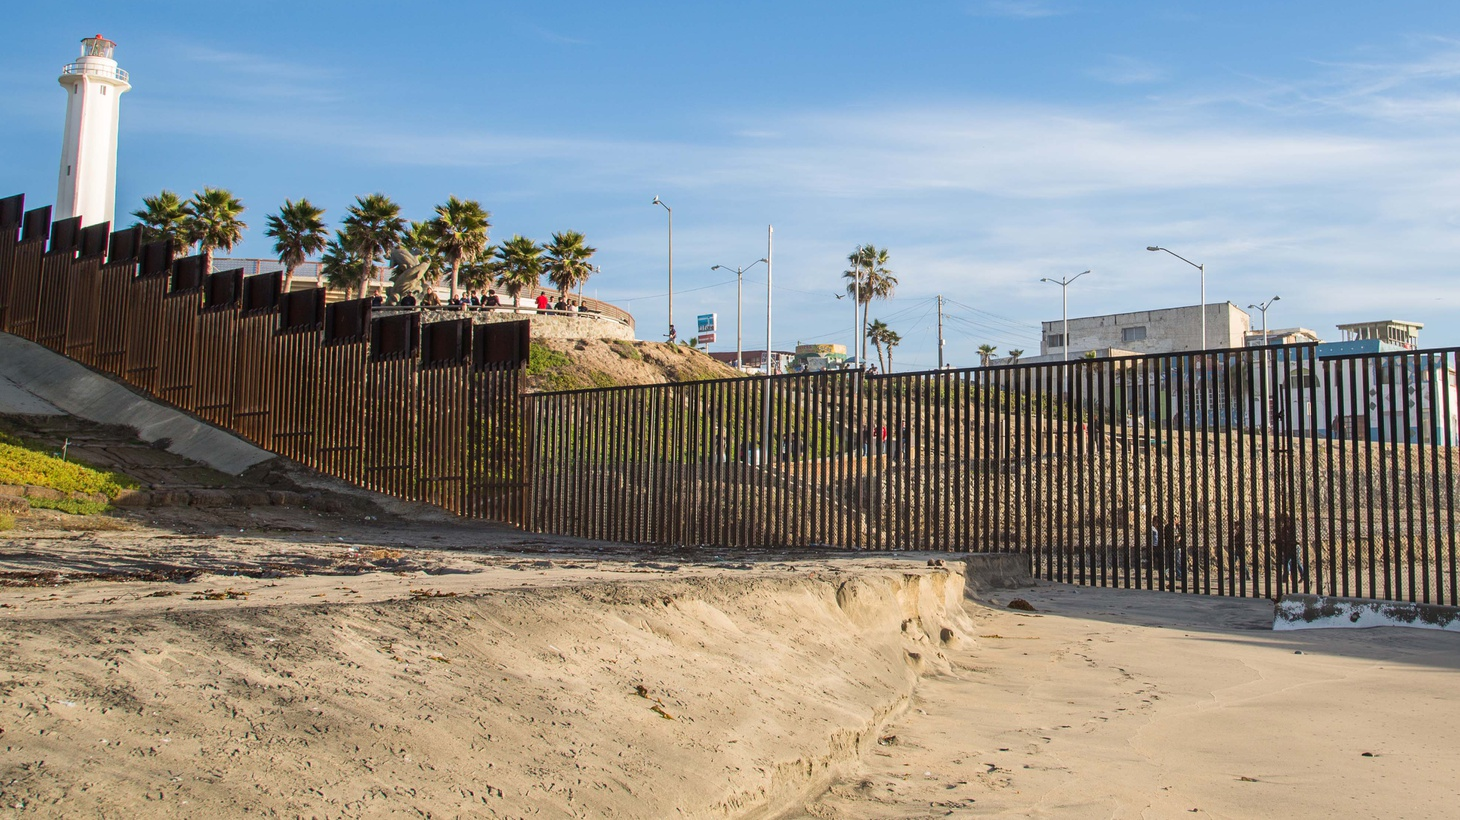 Border Field State Park/Imperial Beach, San Diego, California. The fence between the USA and Mexico along the Pacific Ocean just south of San Diego.